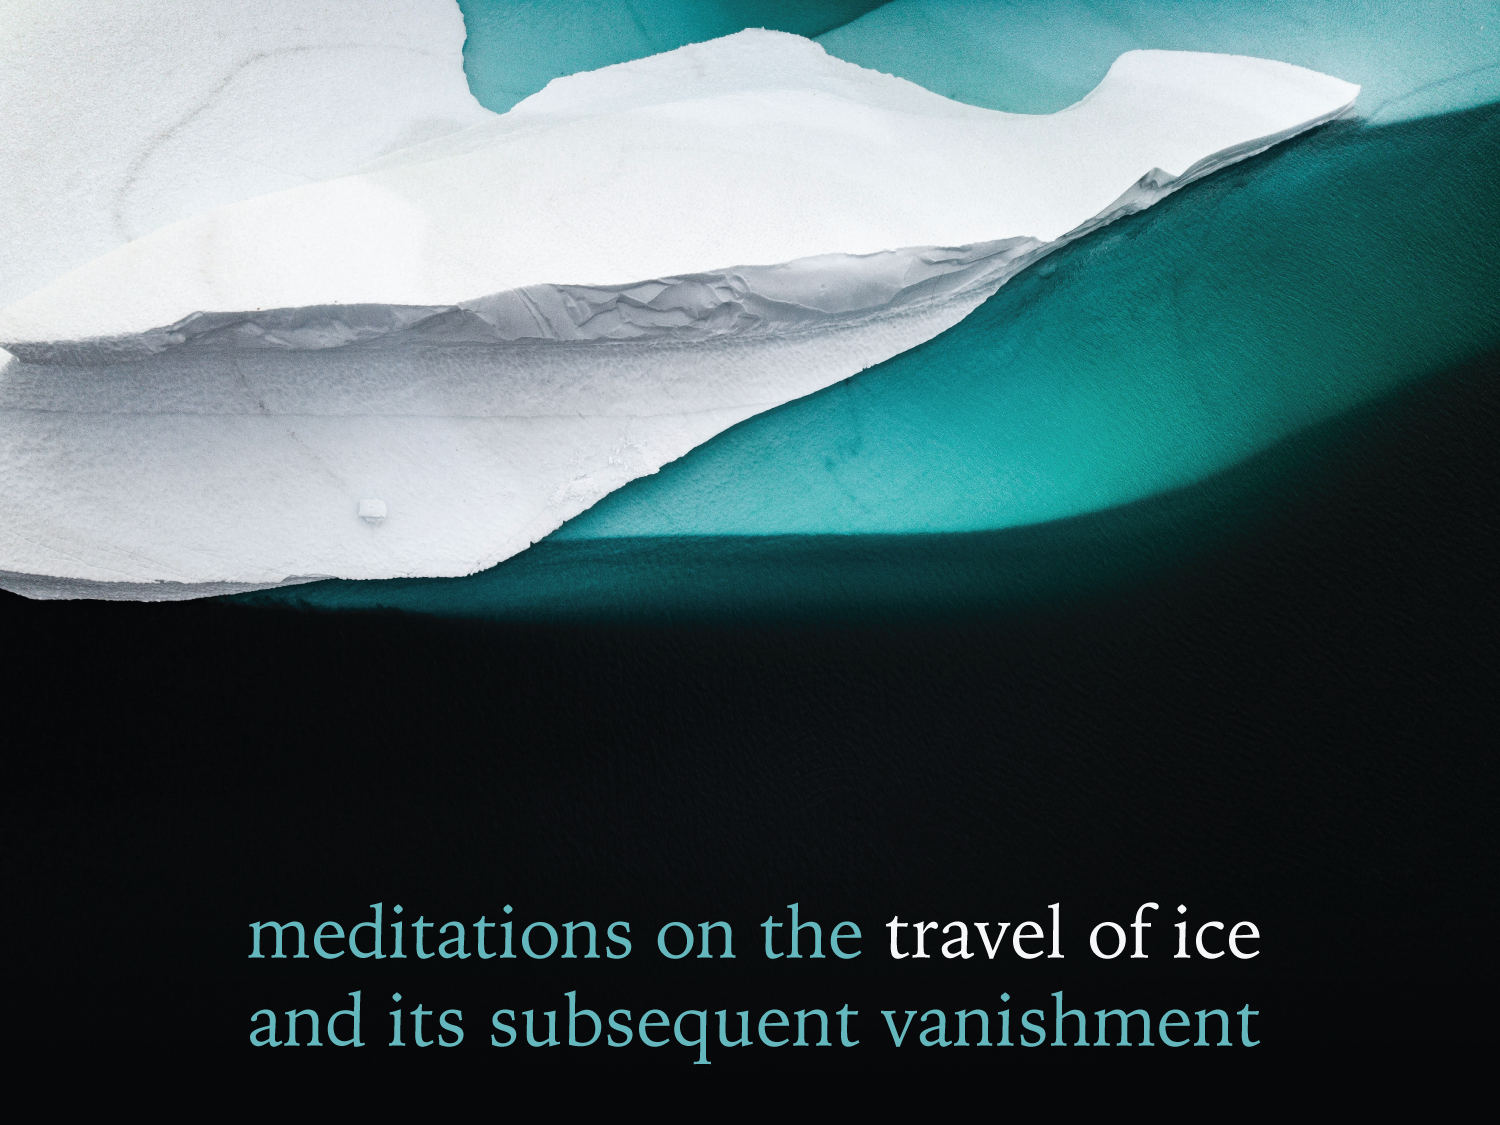 meditations on the travel of ice and its subsequent vanishment